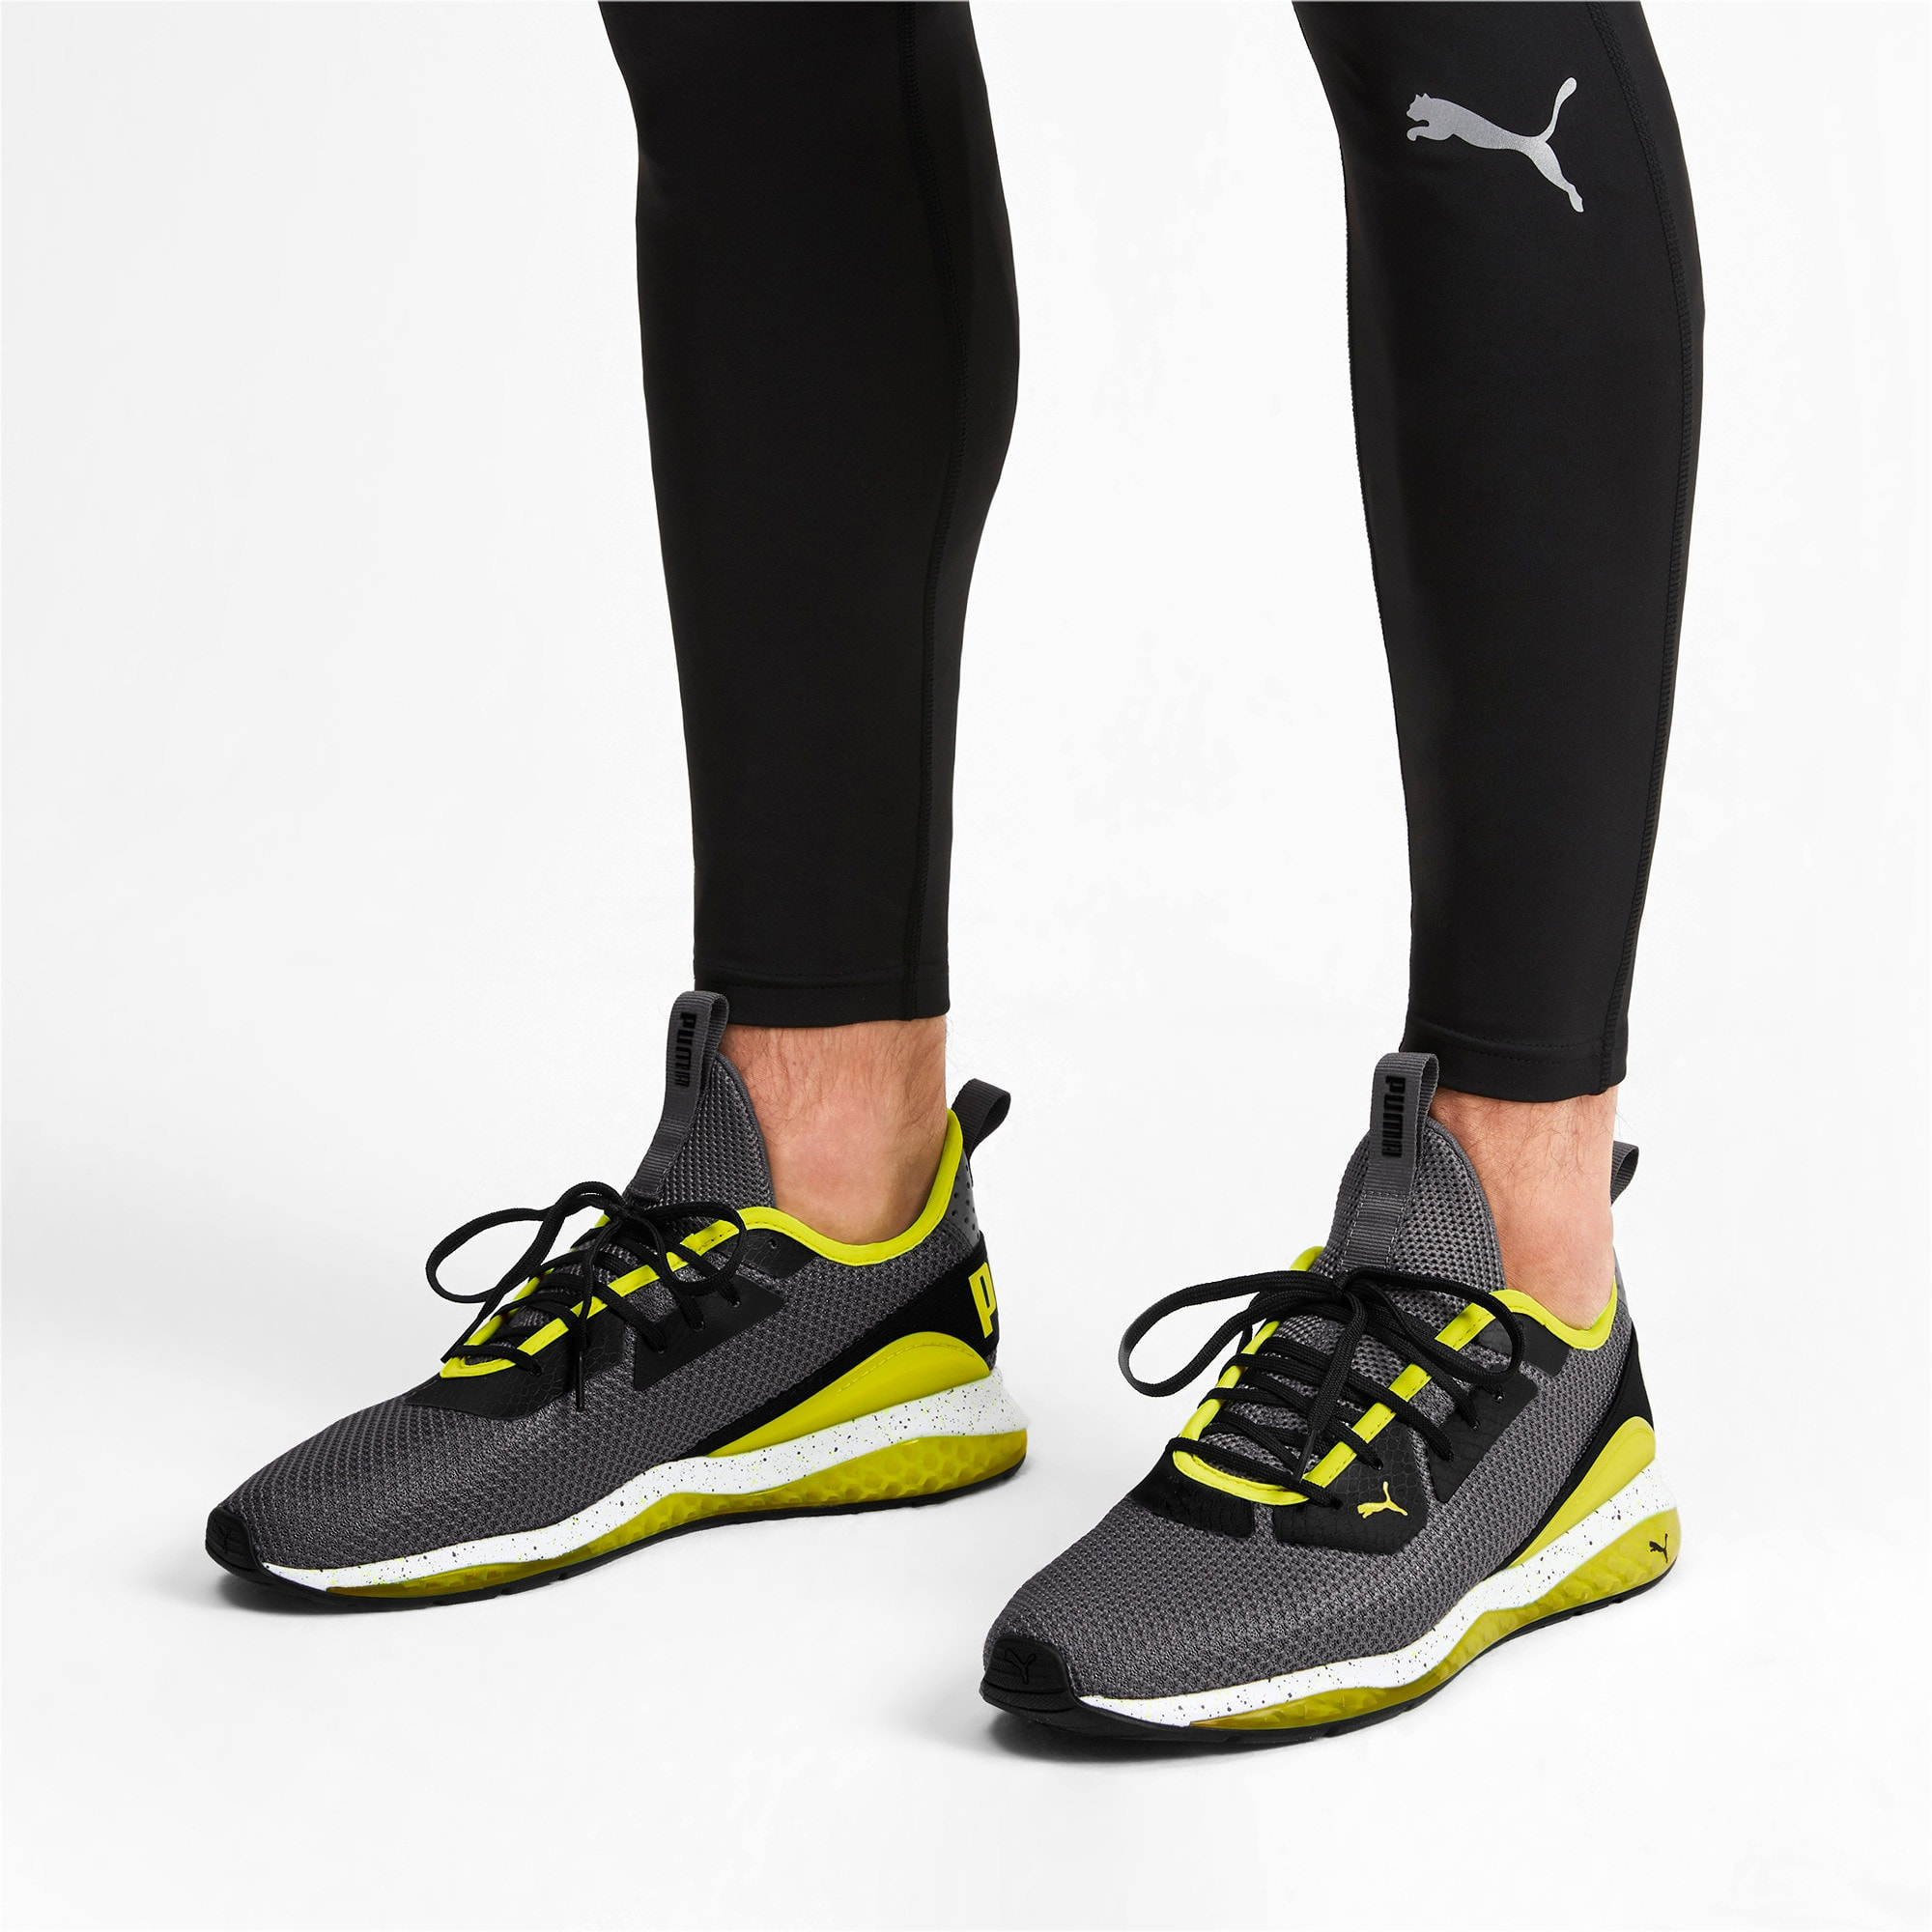 Thumbnail 3 of Cell Descend Weave Running Trainers, CASTLEROCK-Black-Yellow, medium-IND